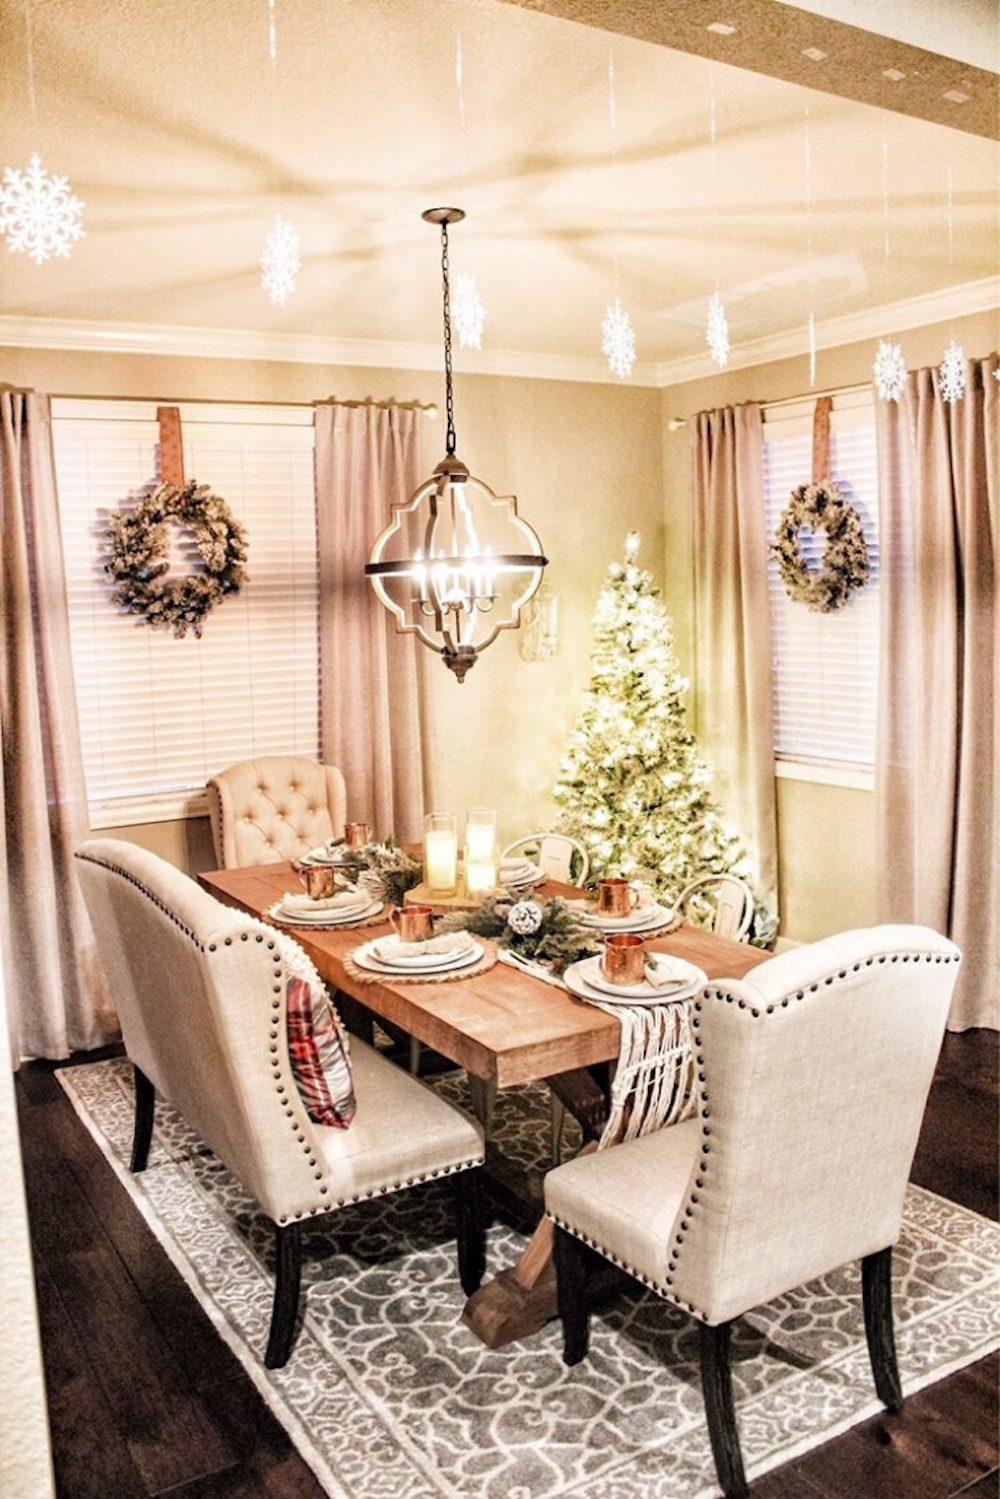 Image of: Likehome A Farmhouse Christmas Decorating Inspiration For A Festive Holiday Dining Room